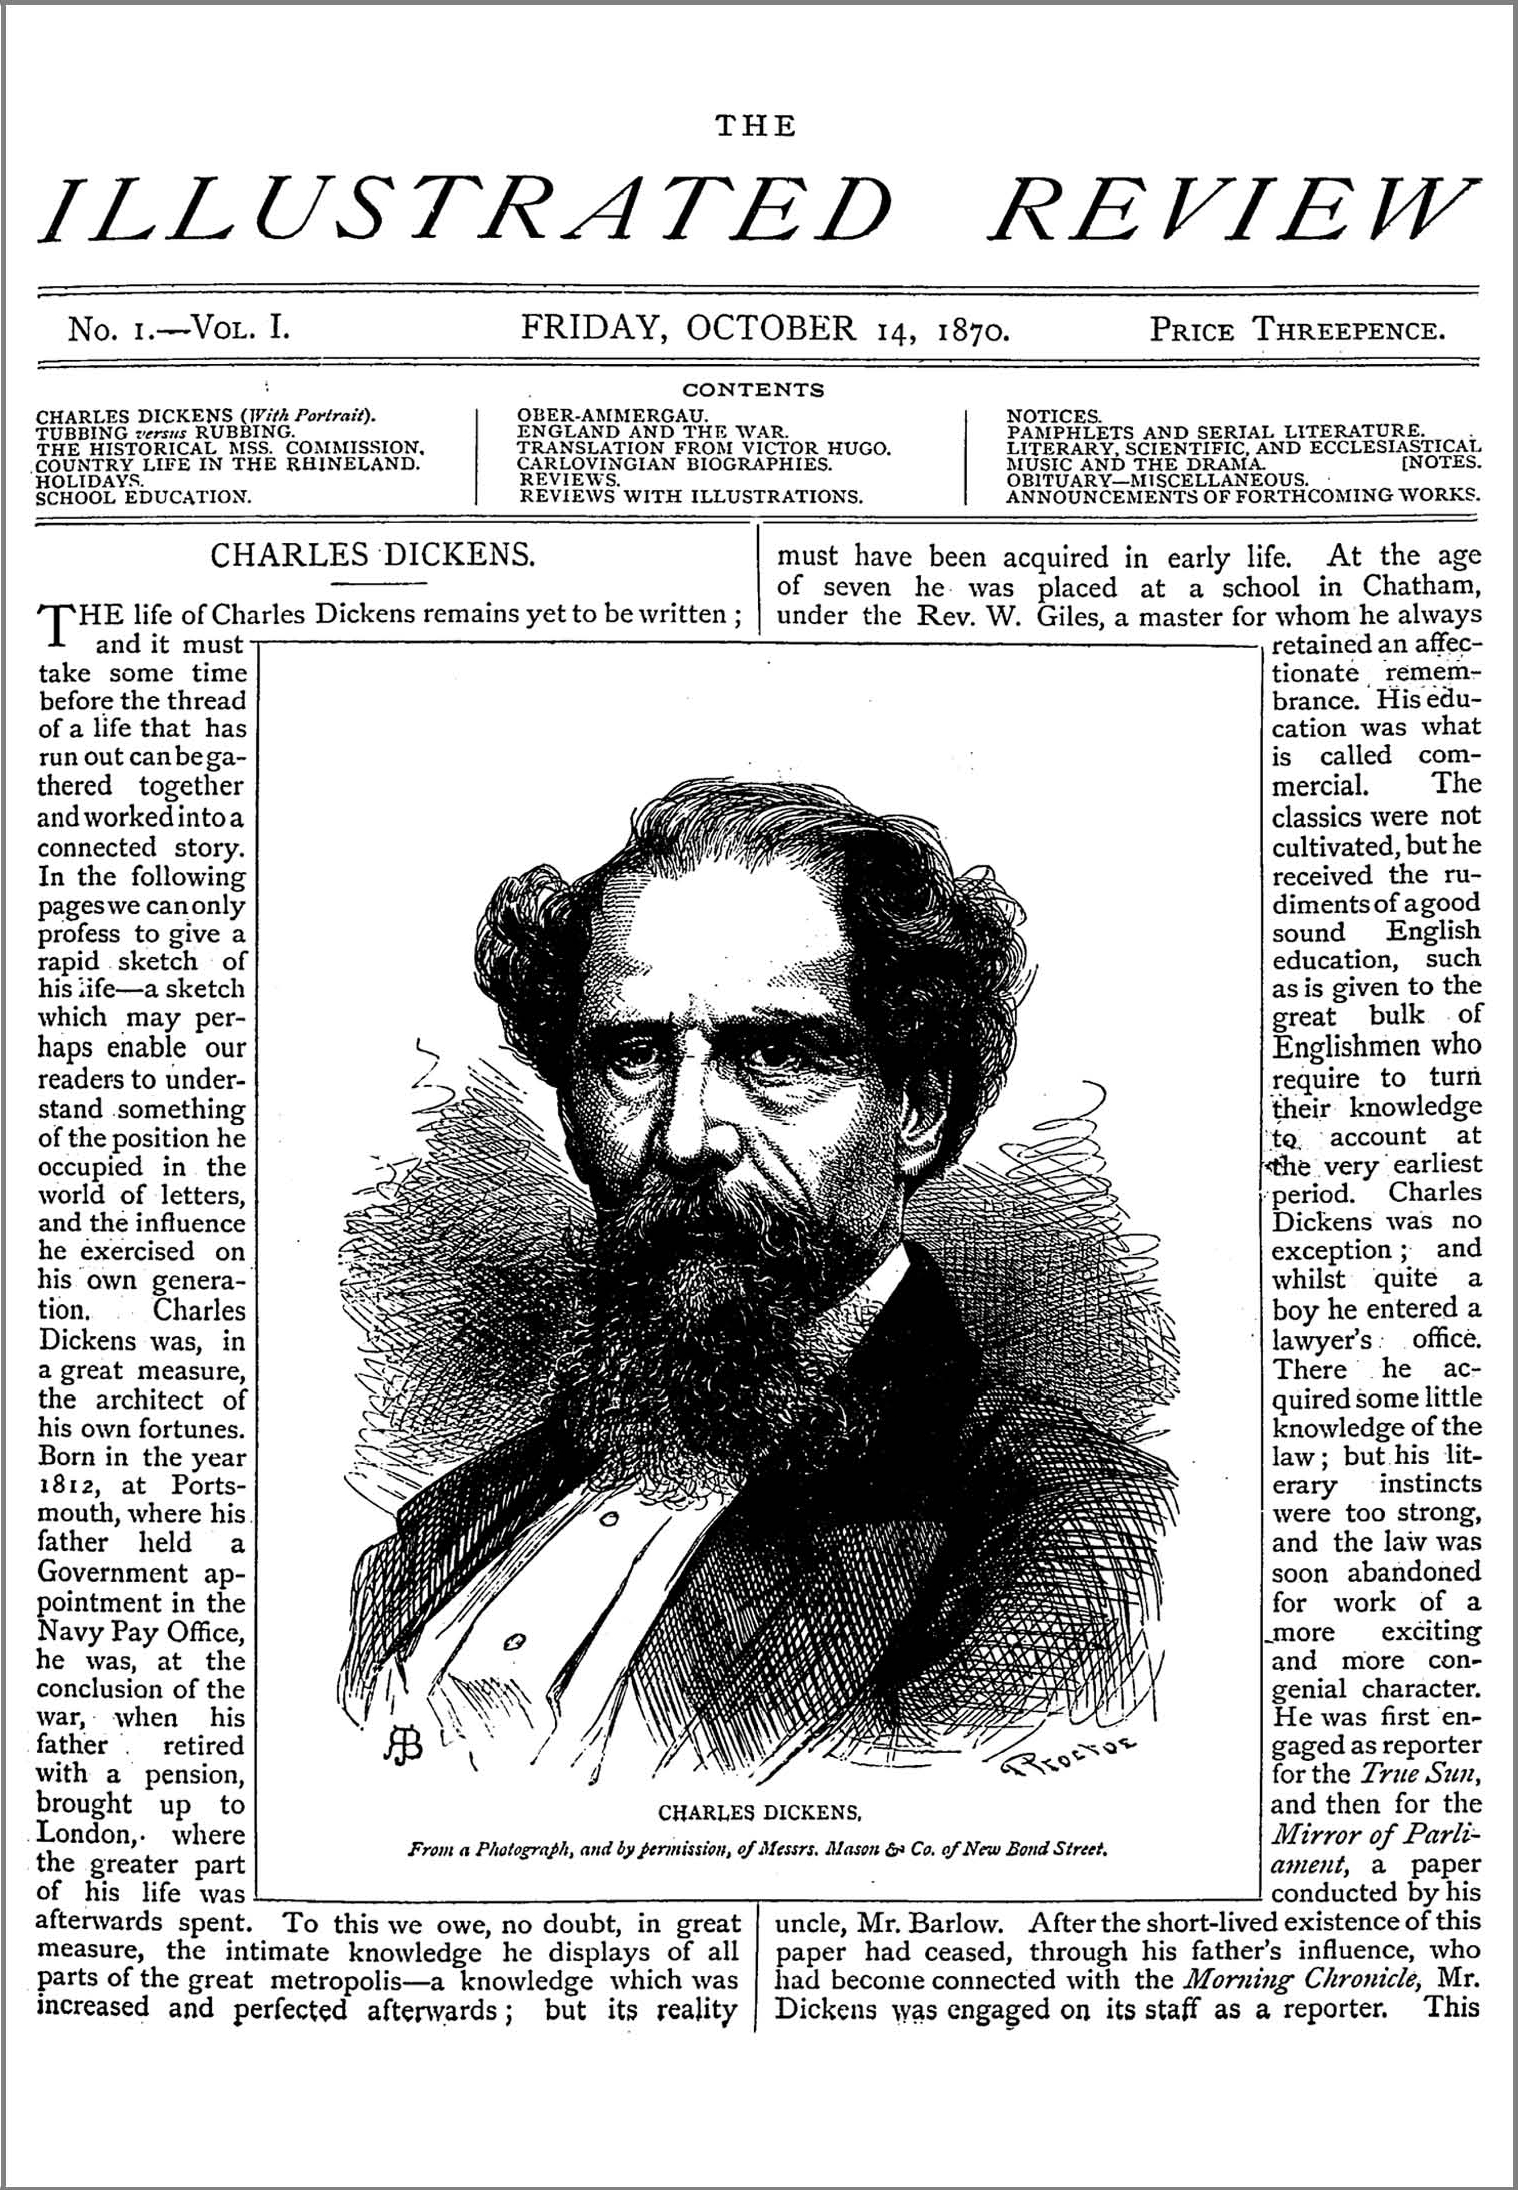 charles dickens traumatic life gave substance and character to his writings